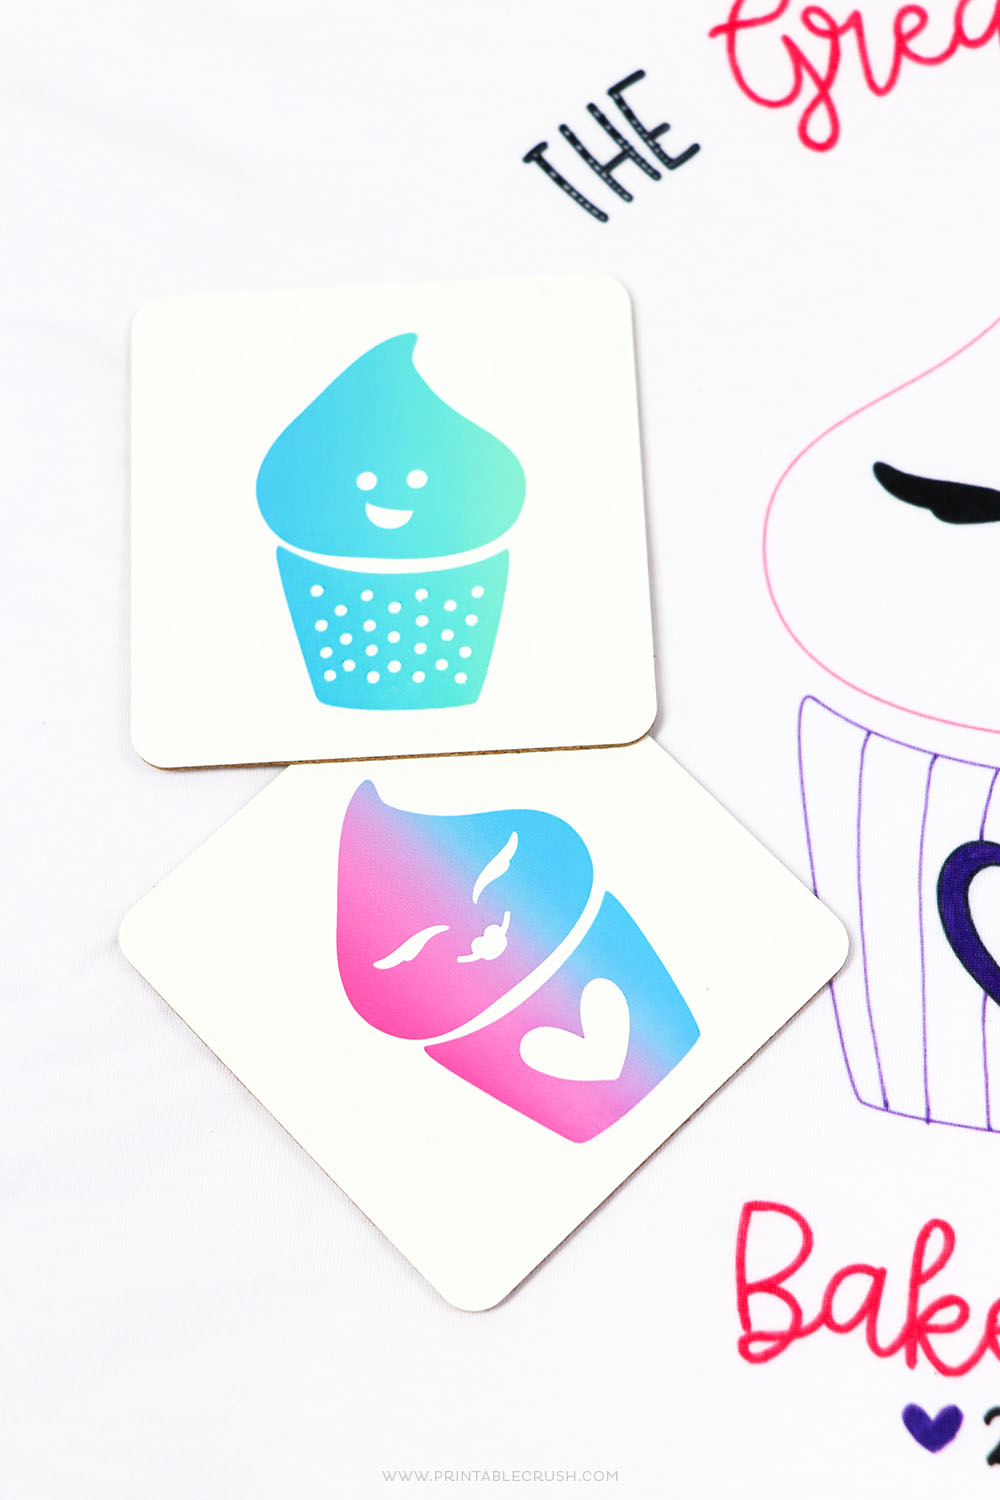 Create these FUN Cricut Infusible Ink Coasters with the Cricut Maker!